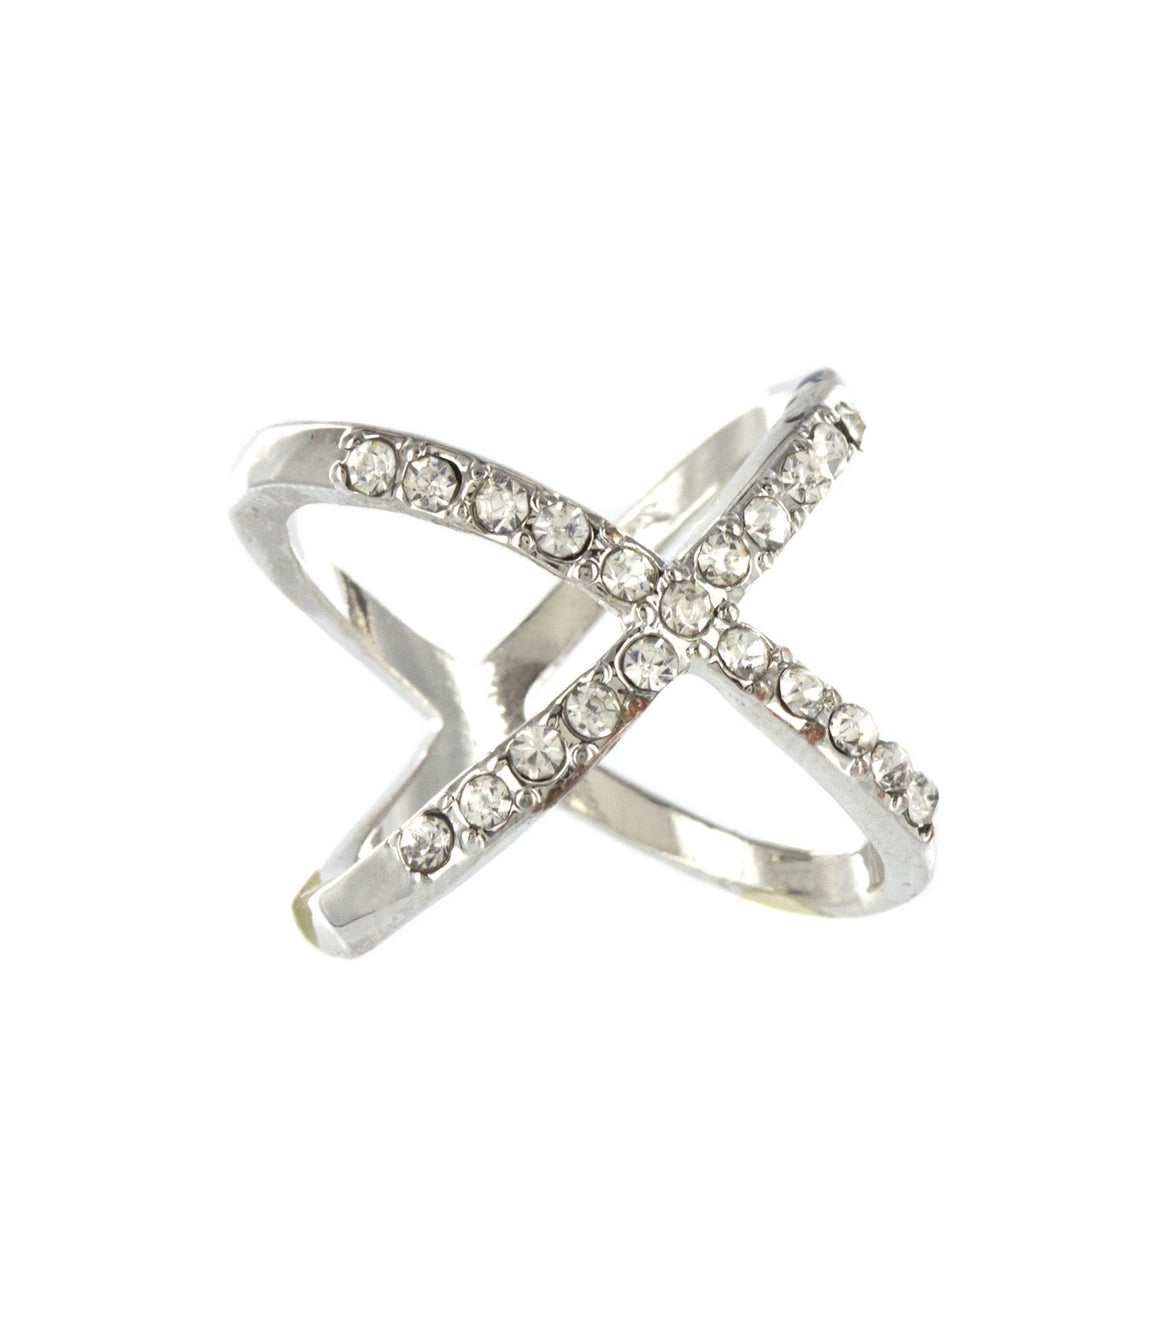 Delicate x rhinestone Sized Ring.